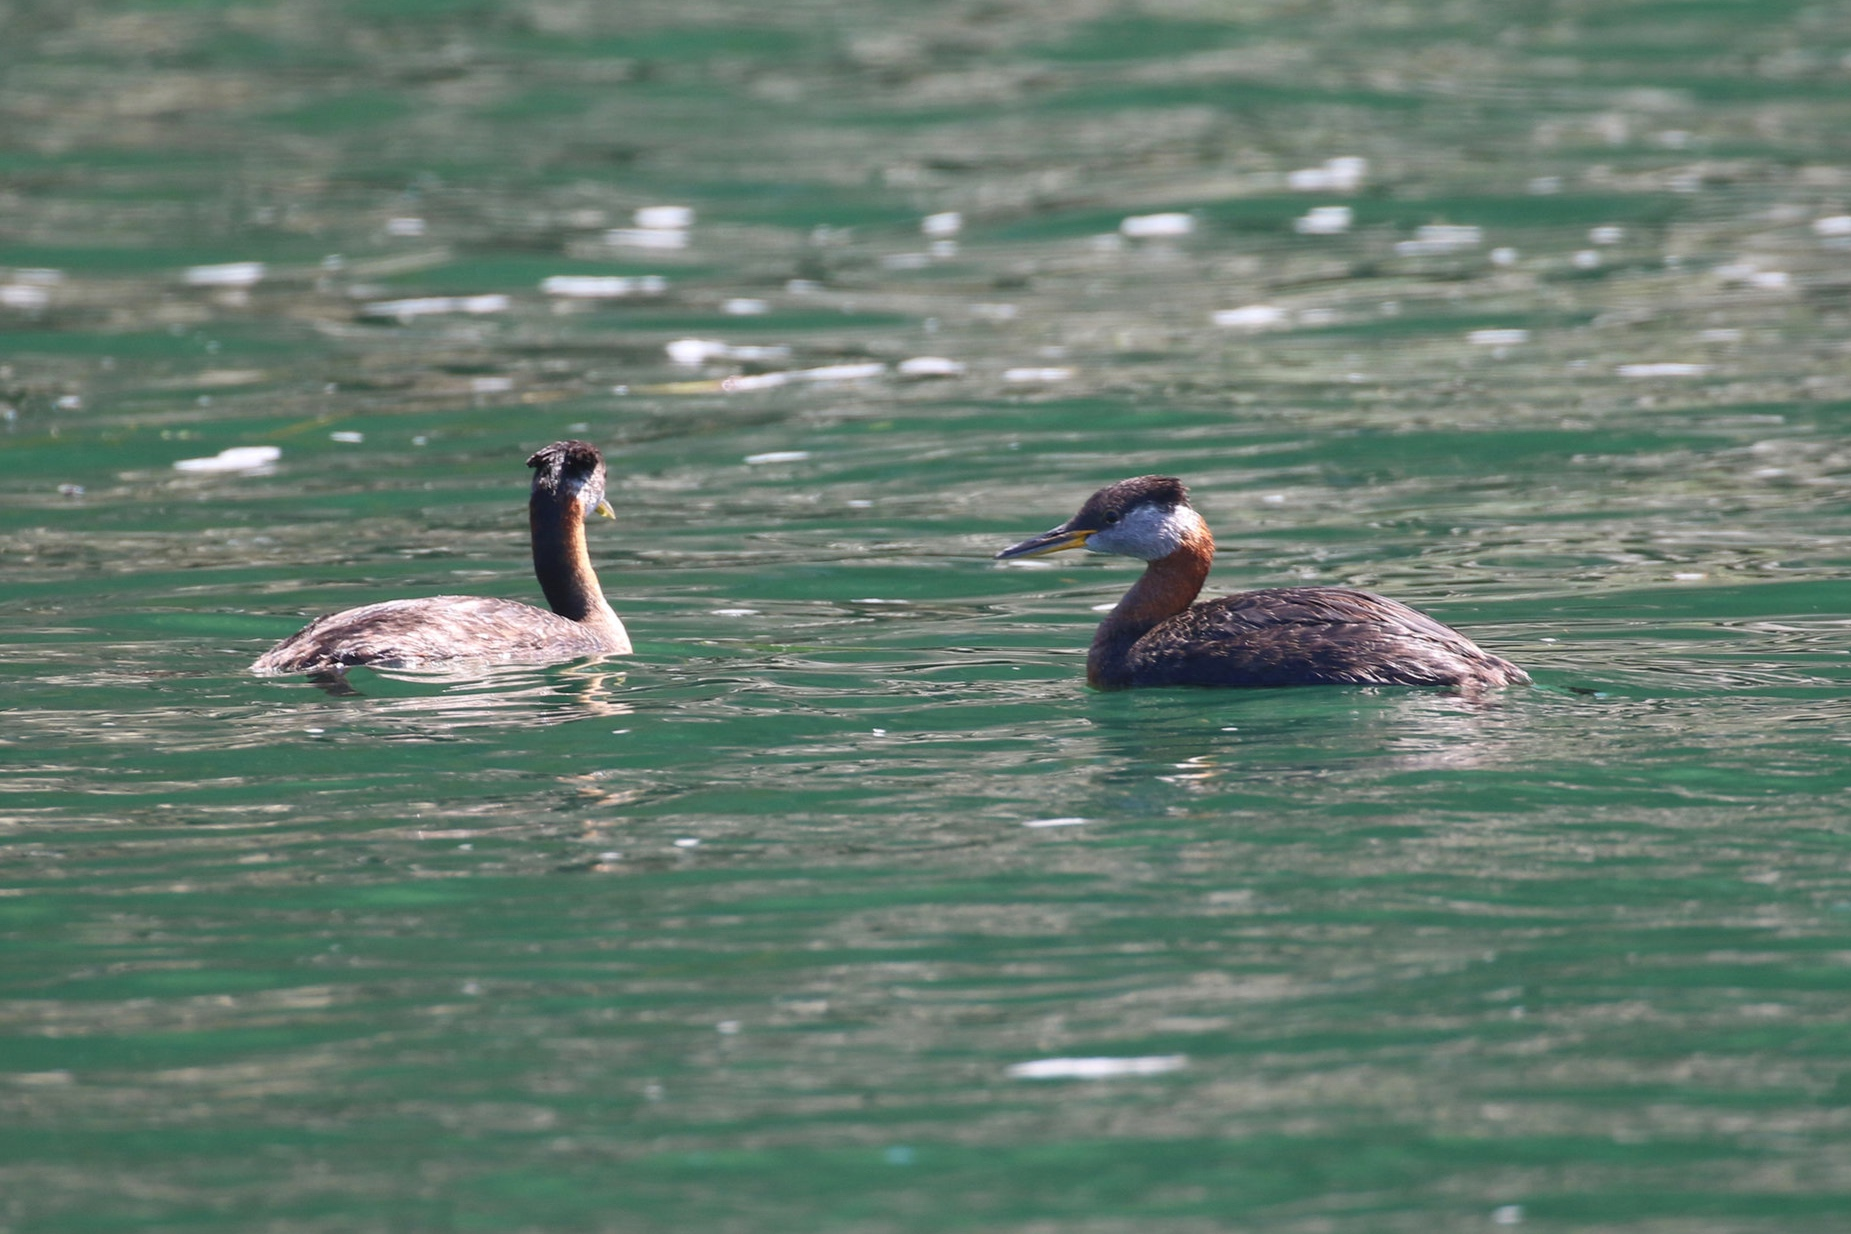 A pair of Red-necked Grebes. Photo by Rebeka Pirker (10:30).